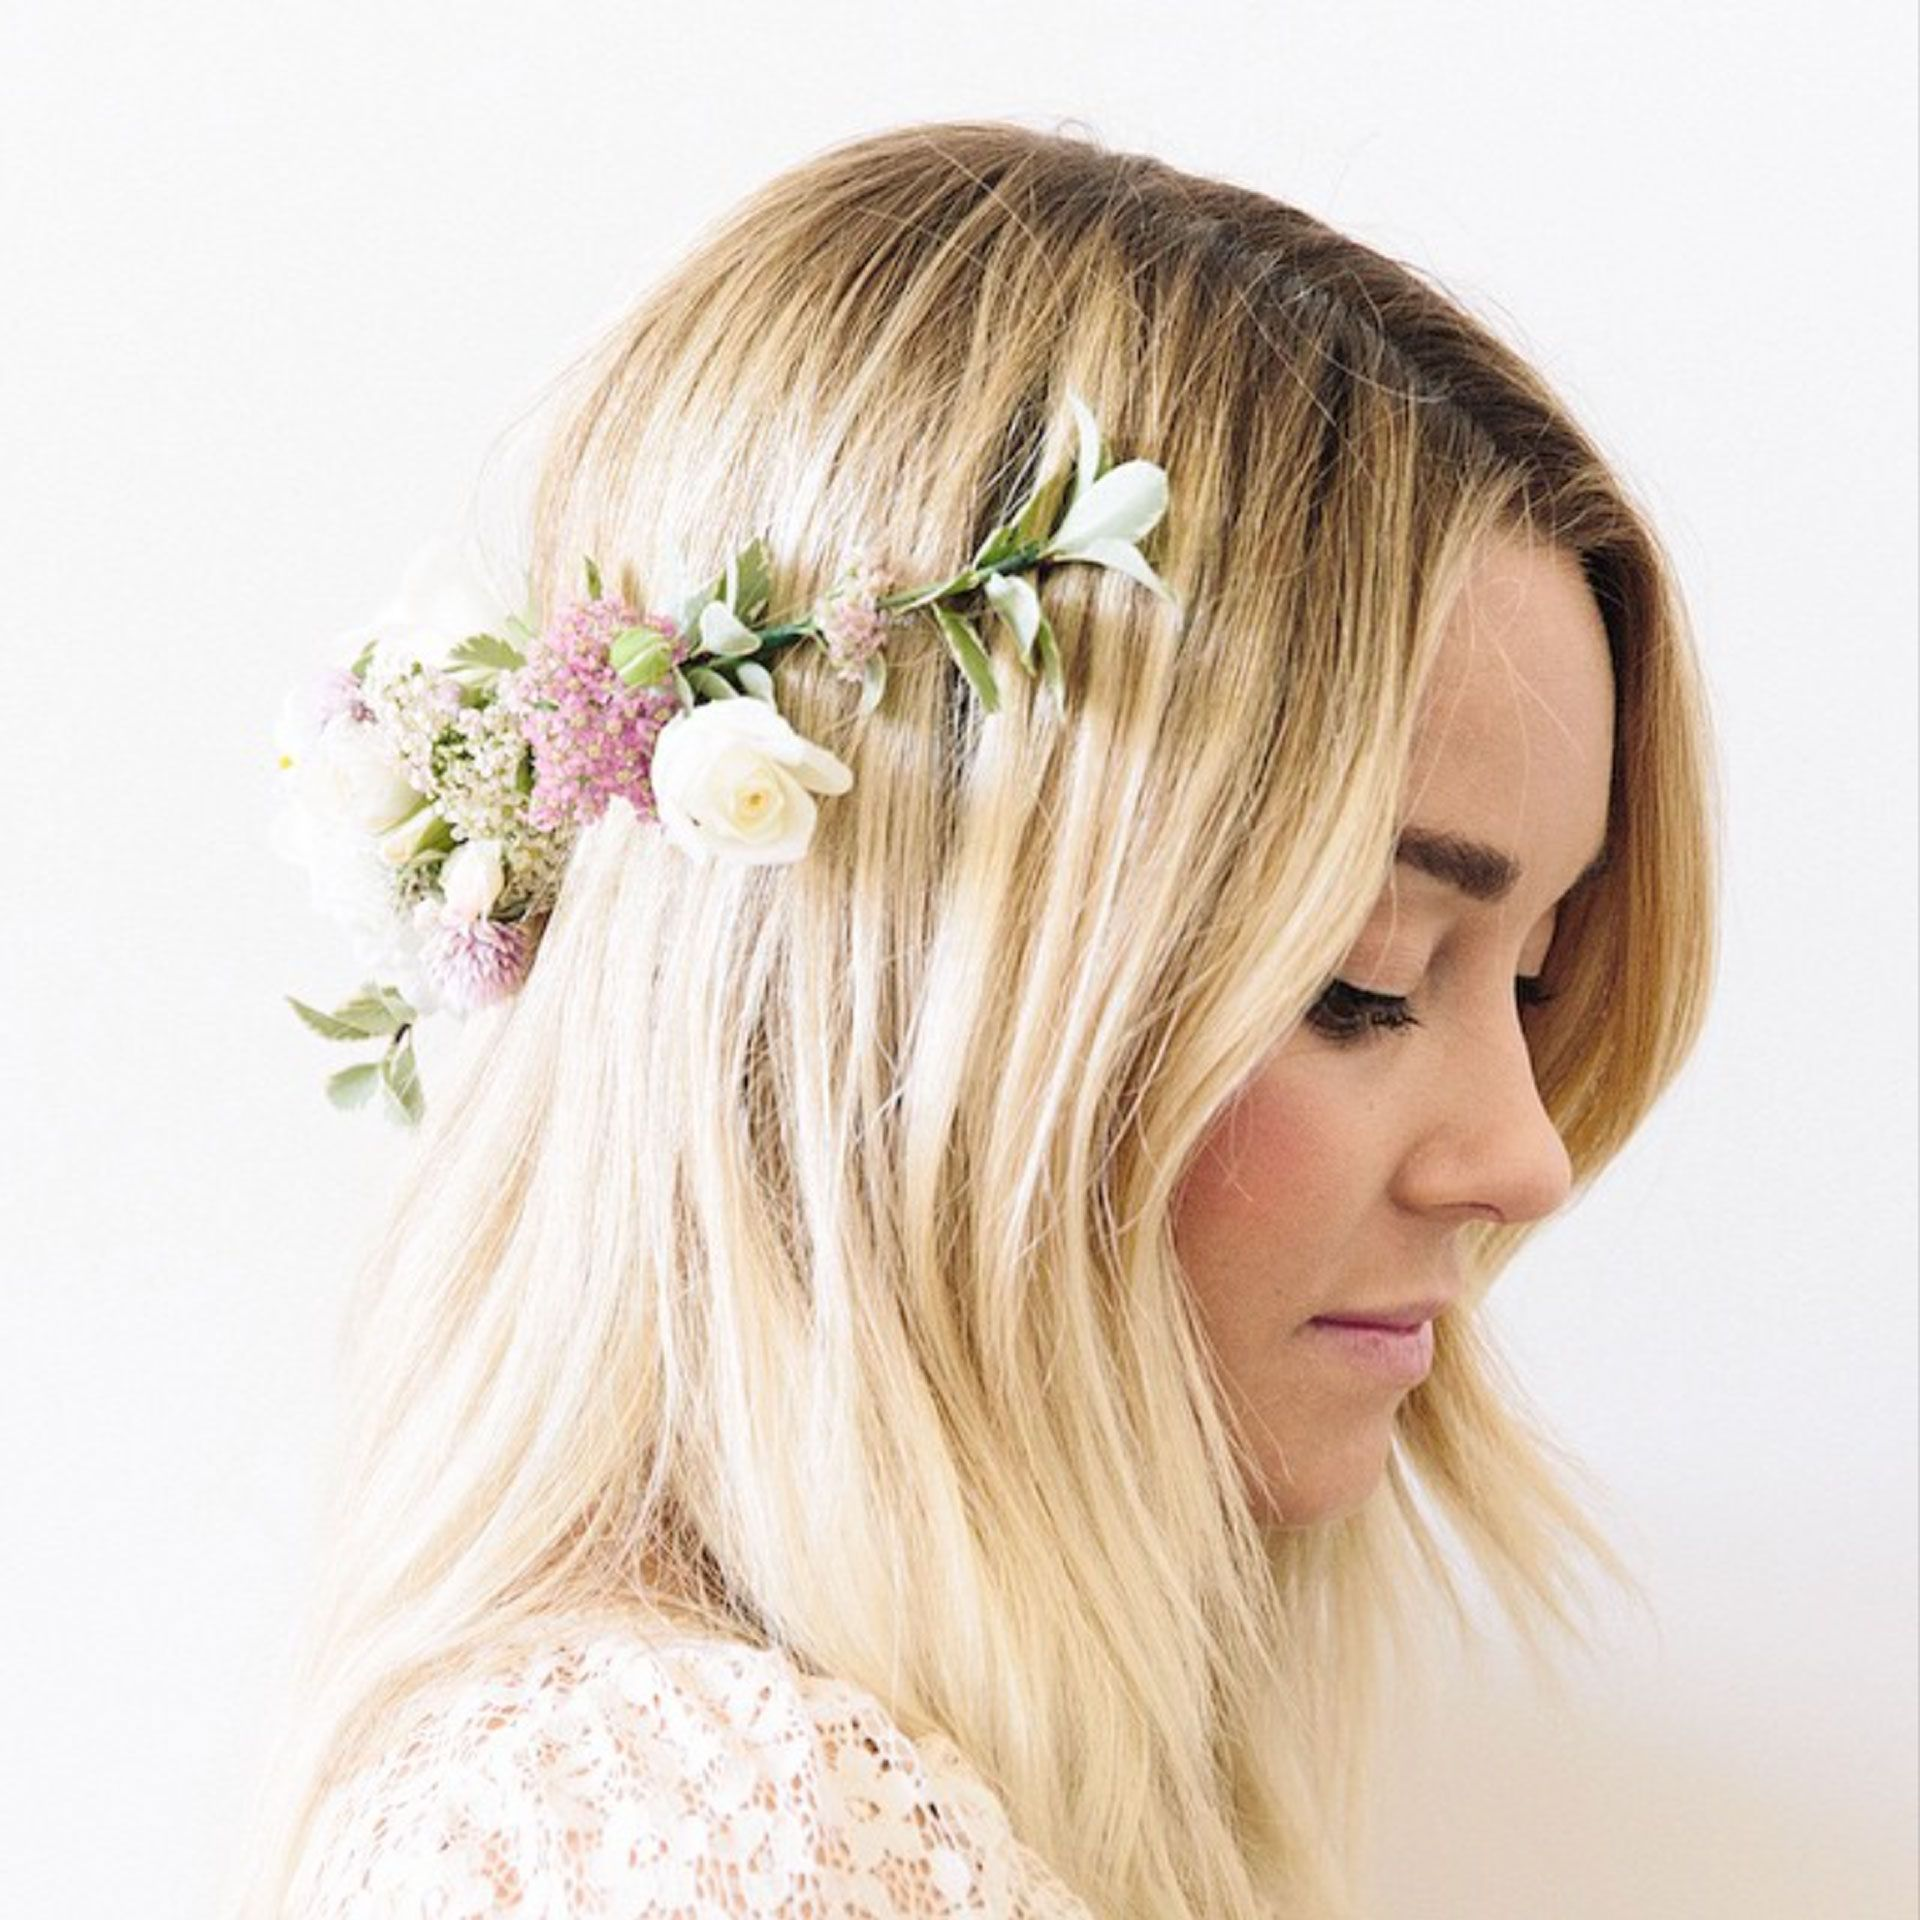 20 gorgeous flower crowns your pinterest board needs now flower gorgeous flower crowns for any and every occasion how to make crownhow izmirmasajfo